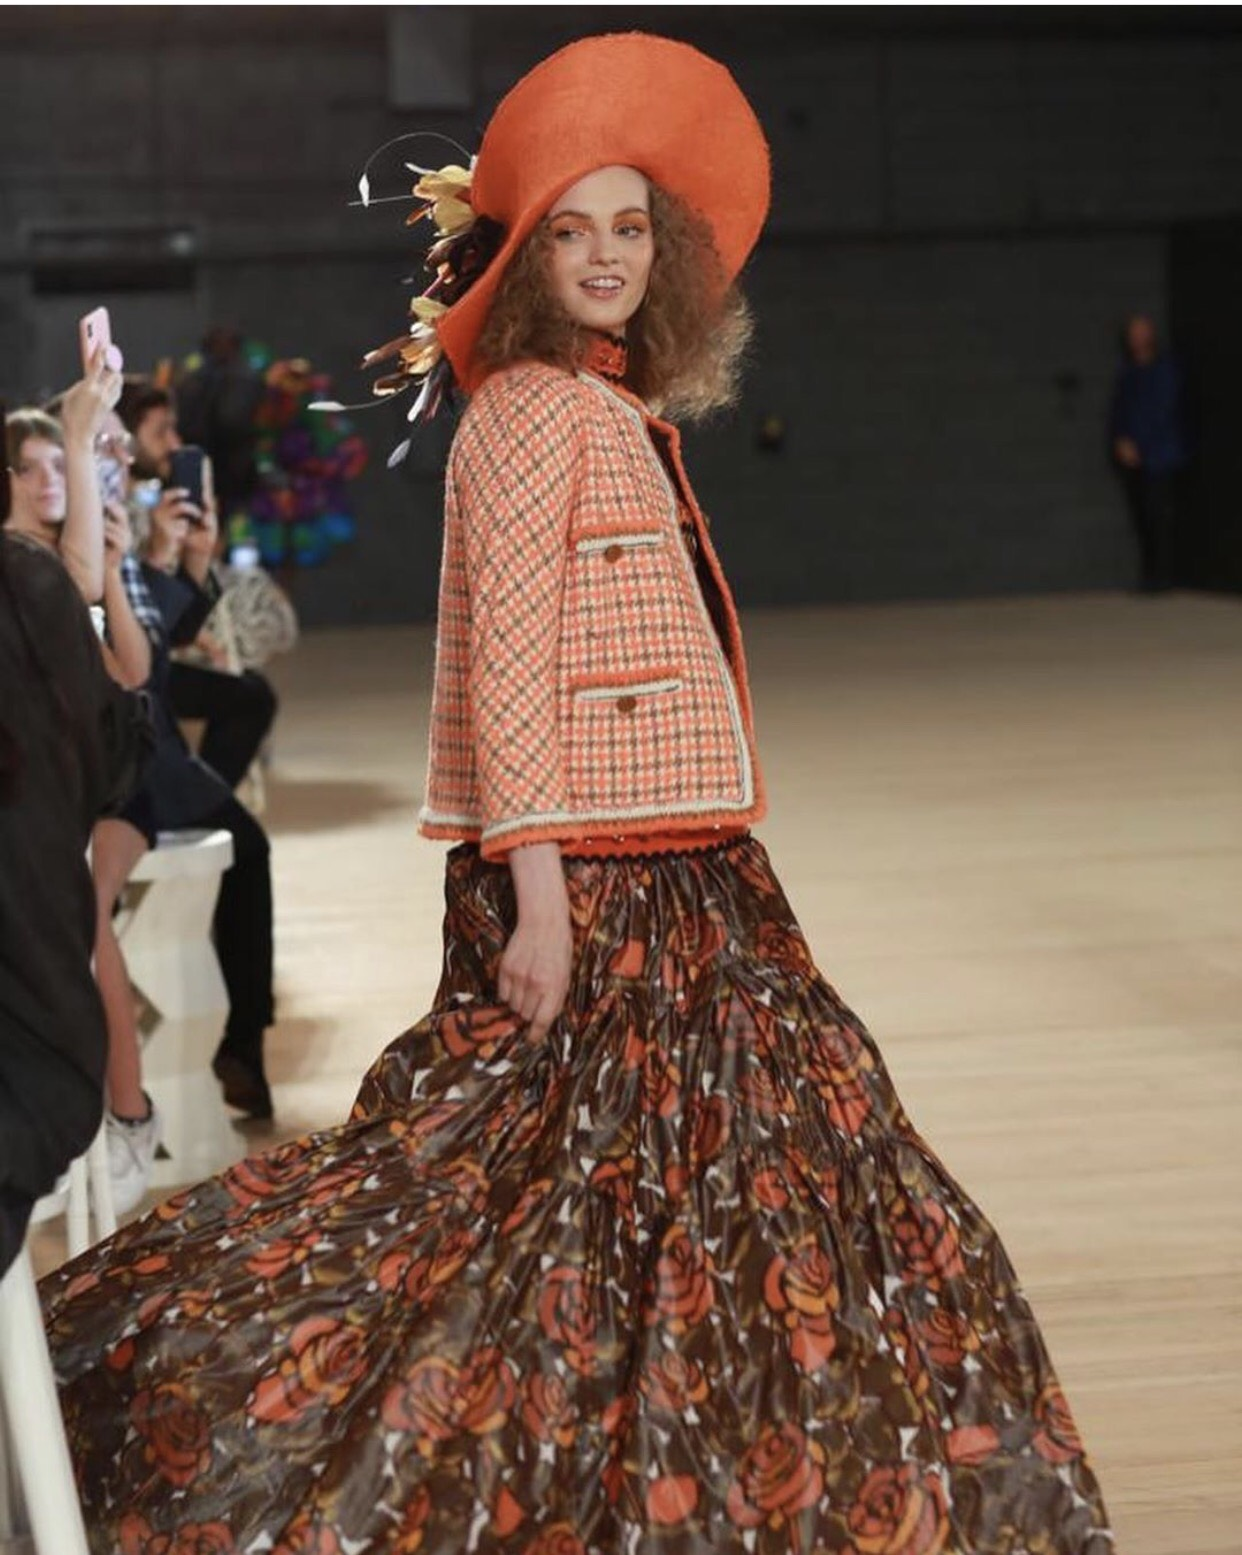 The famous designer presented his colorful collection in the festival atmosphere,